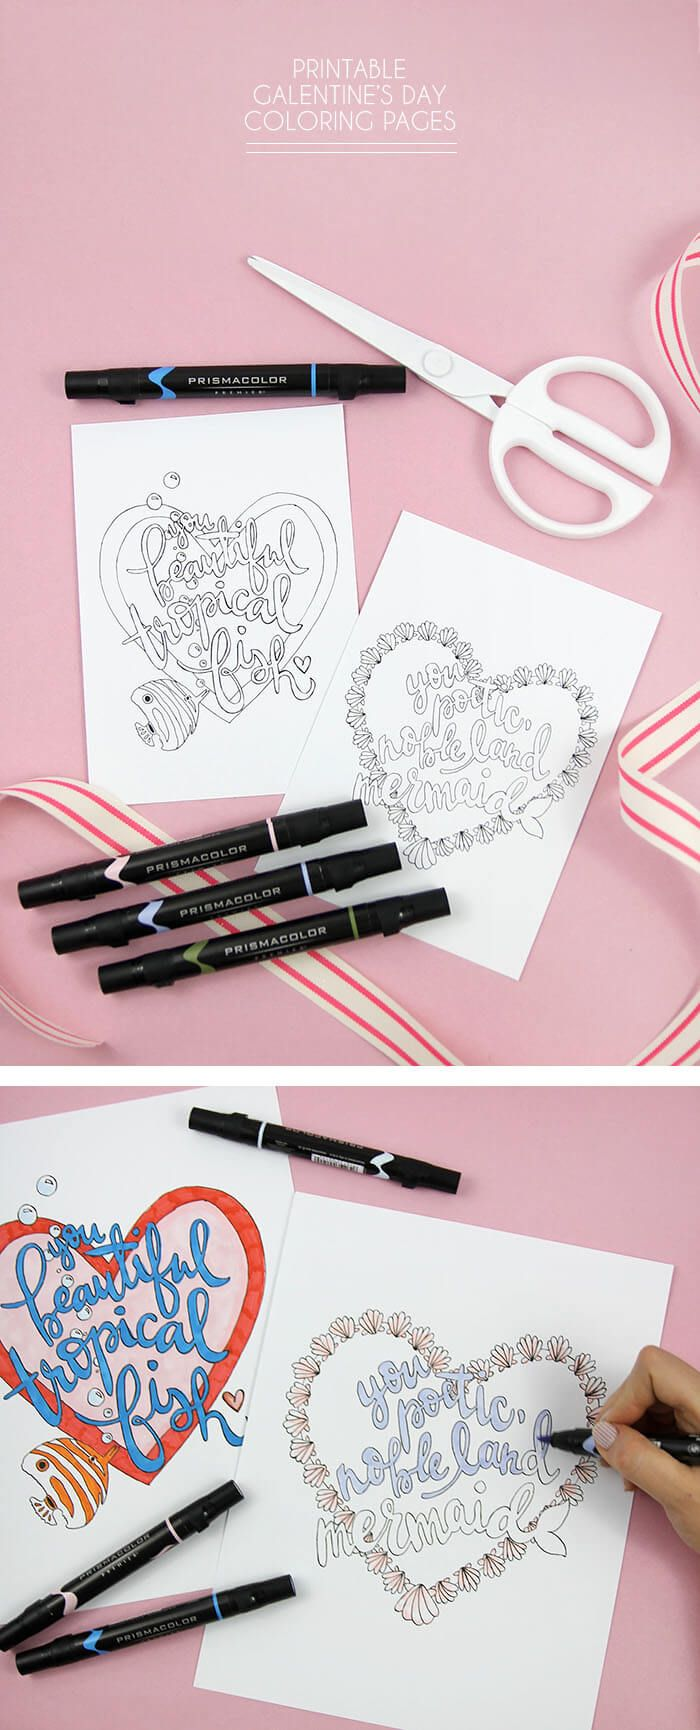 Printable Galentine\'s Day Coloring Pages | Leslie knope quotes ...